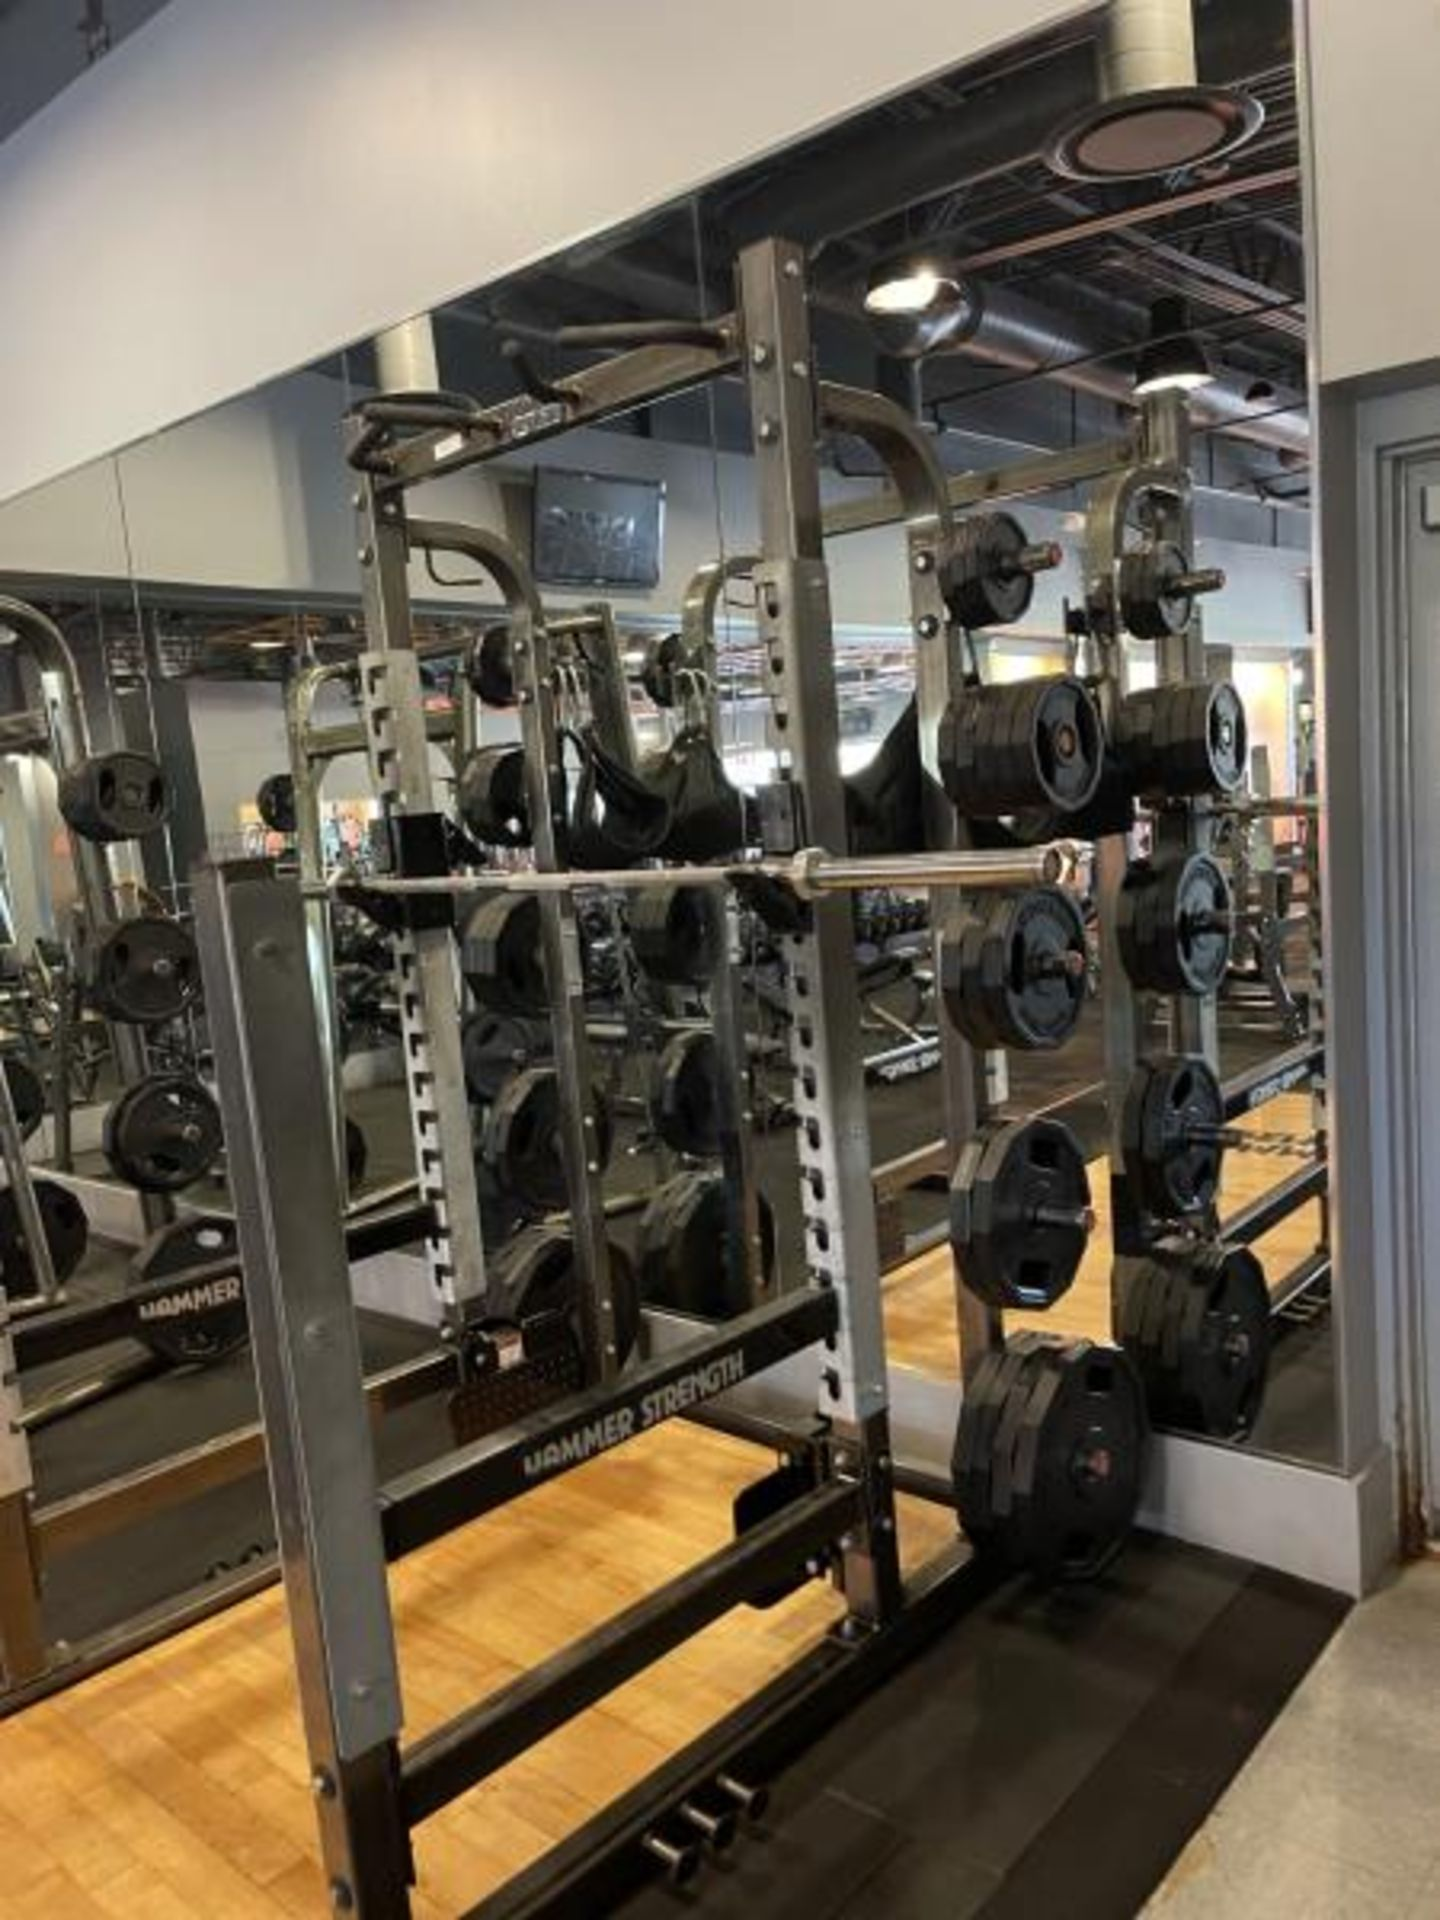 Hammer Strength with Wood Floor, Rack, Iron Grip Weight Plates M: HDMR8/B01 - Image 4 of 7